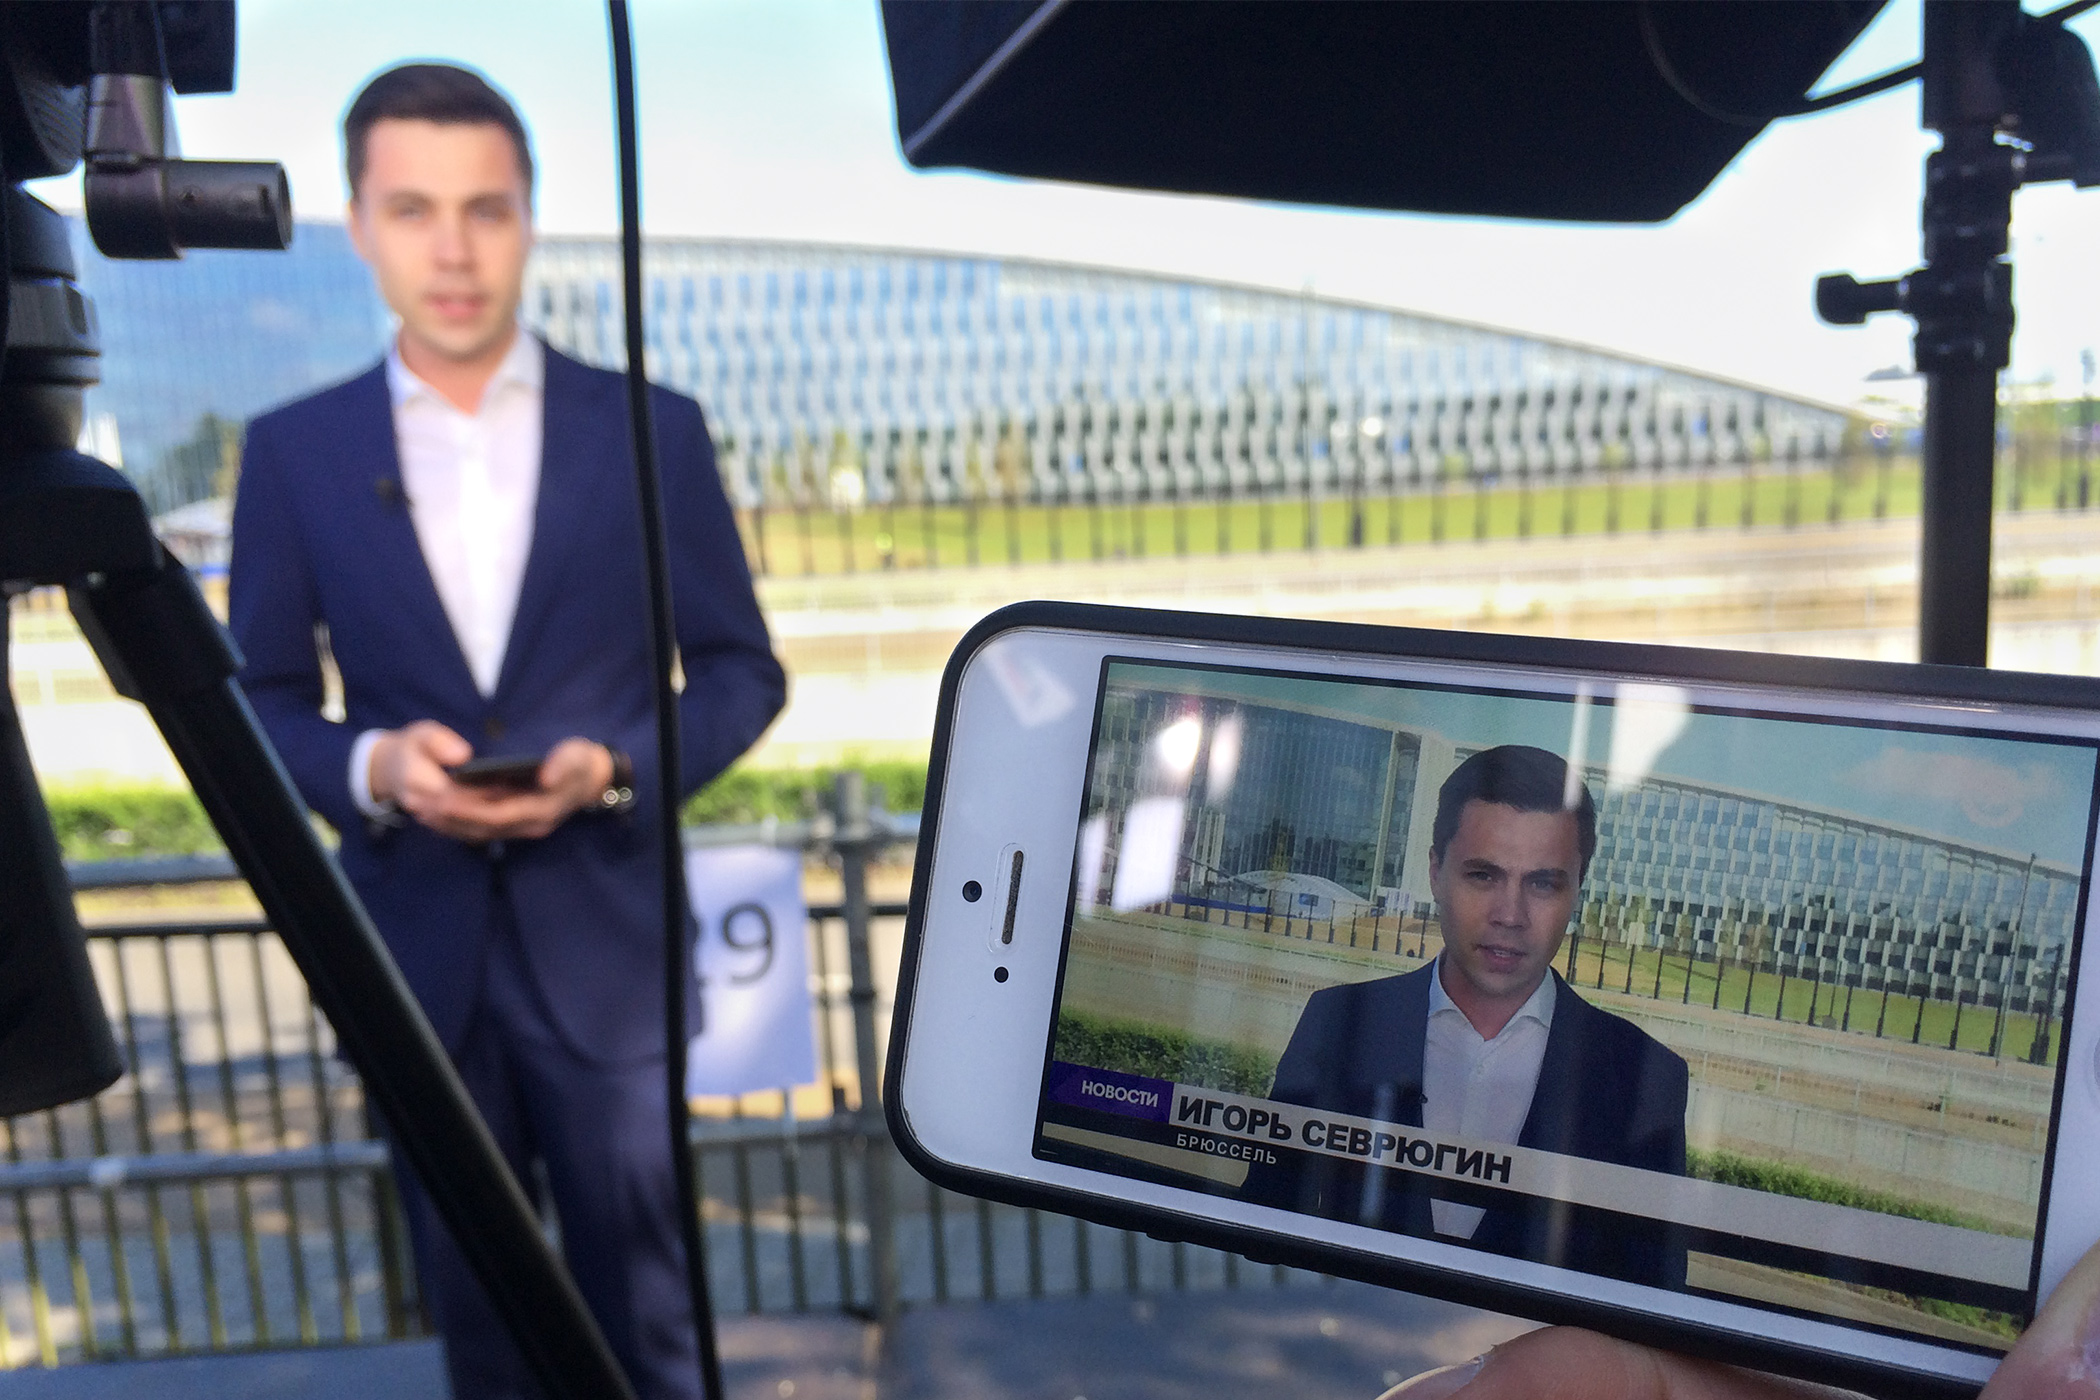 A mobile phone shows a reporter outdoors, the broadcast setup is out of focus in the background